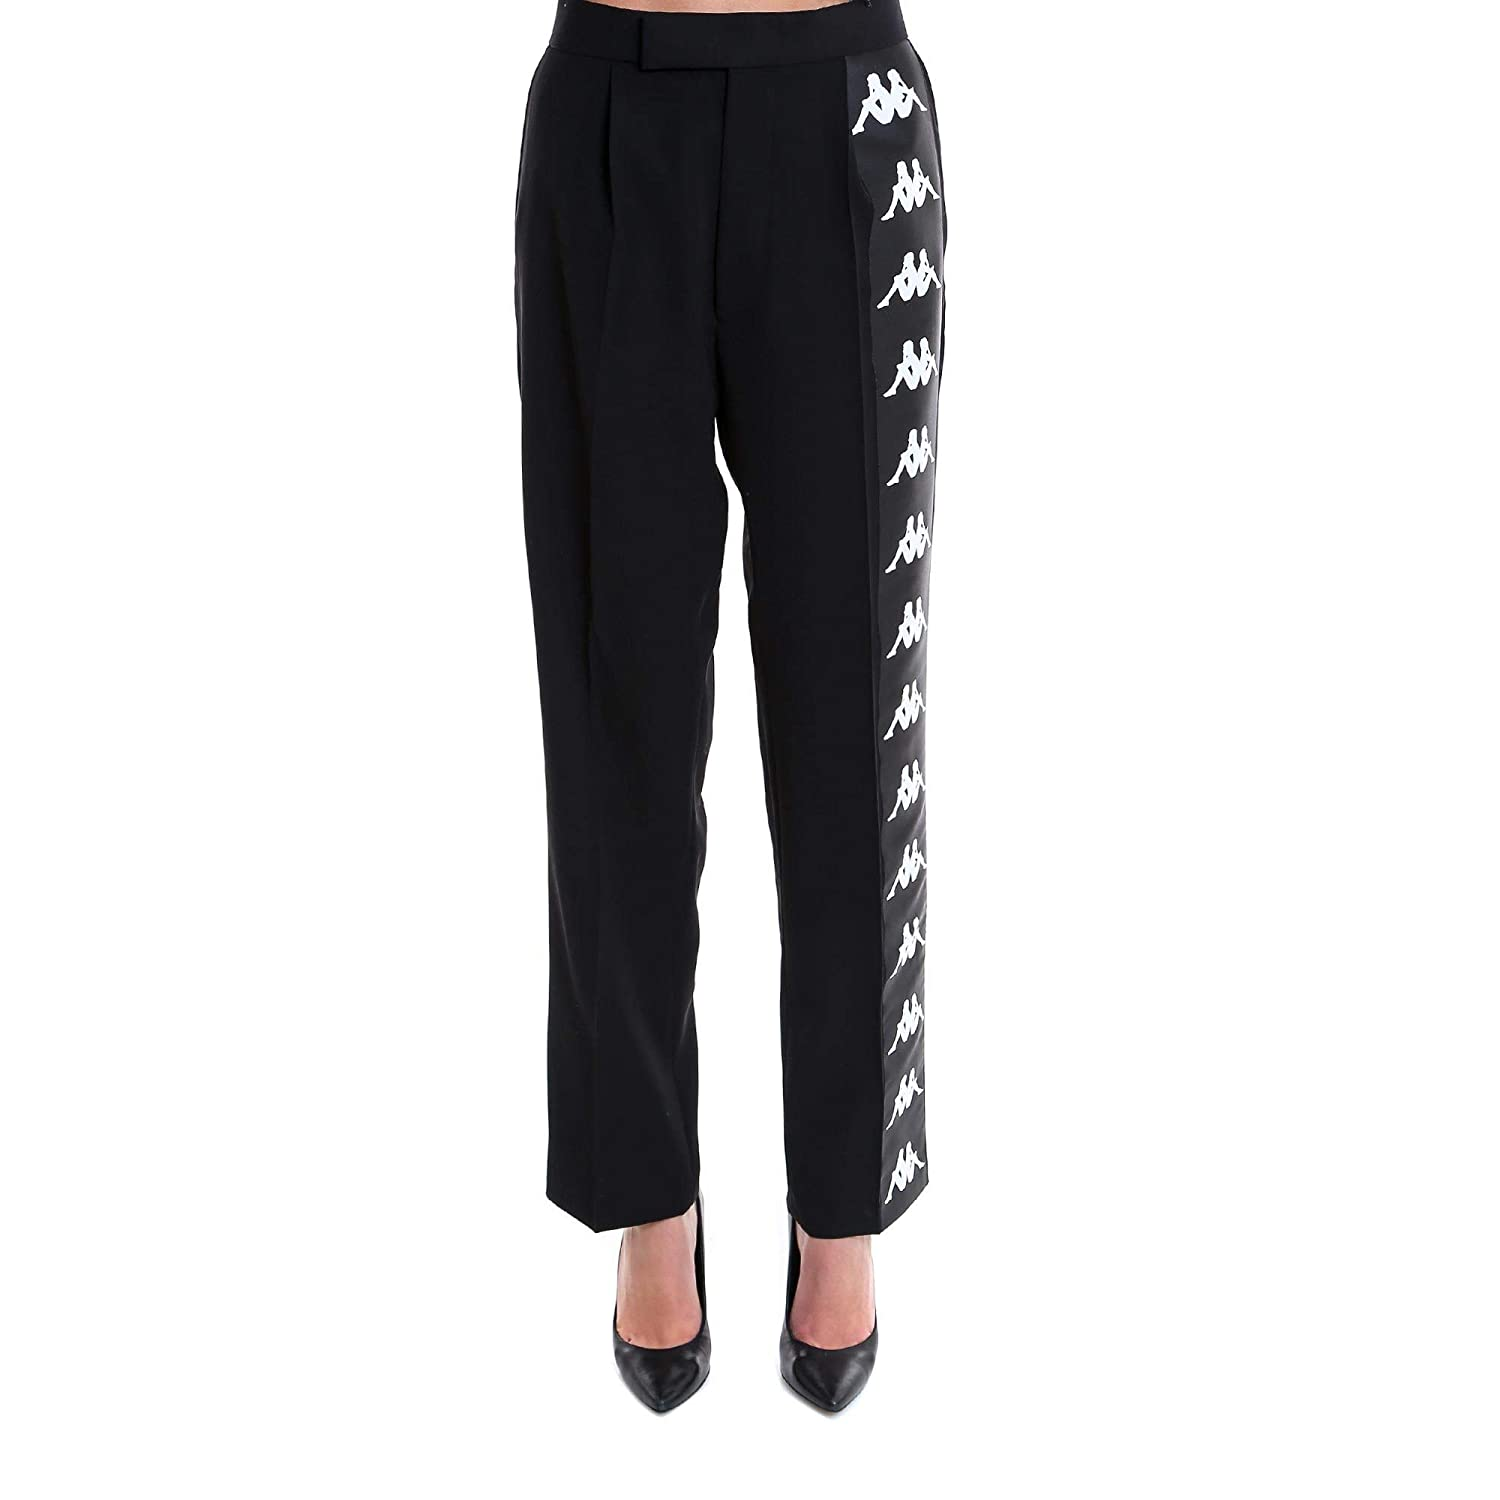 Faith Connexion Women's W1550T00001001 Black Cotton Pants